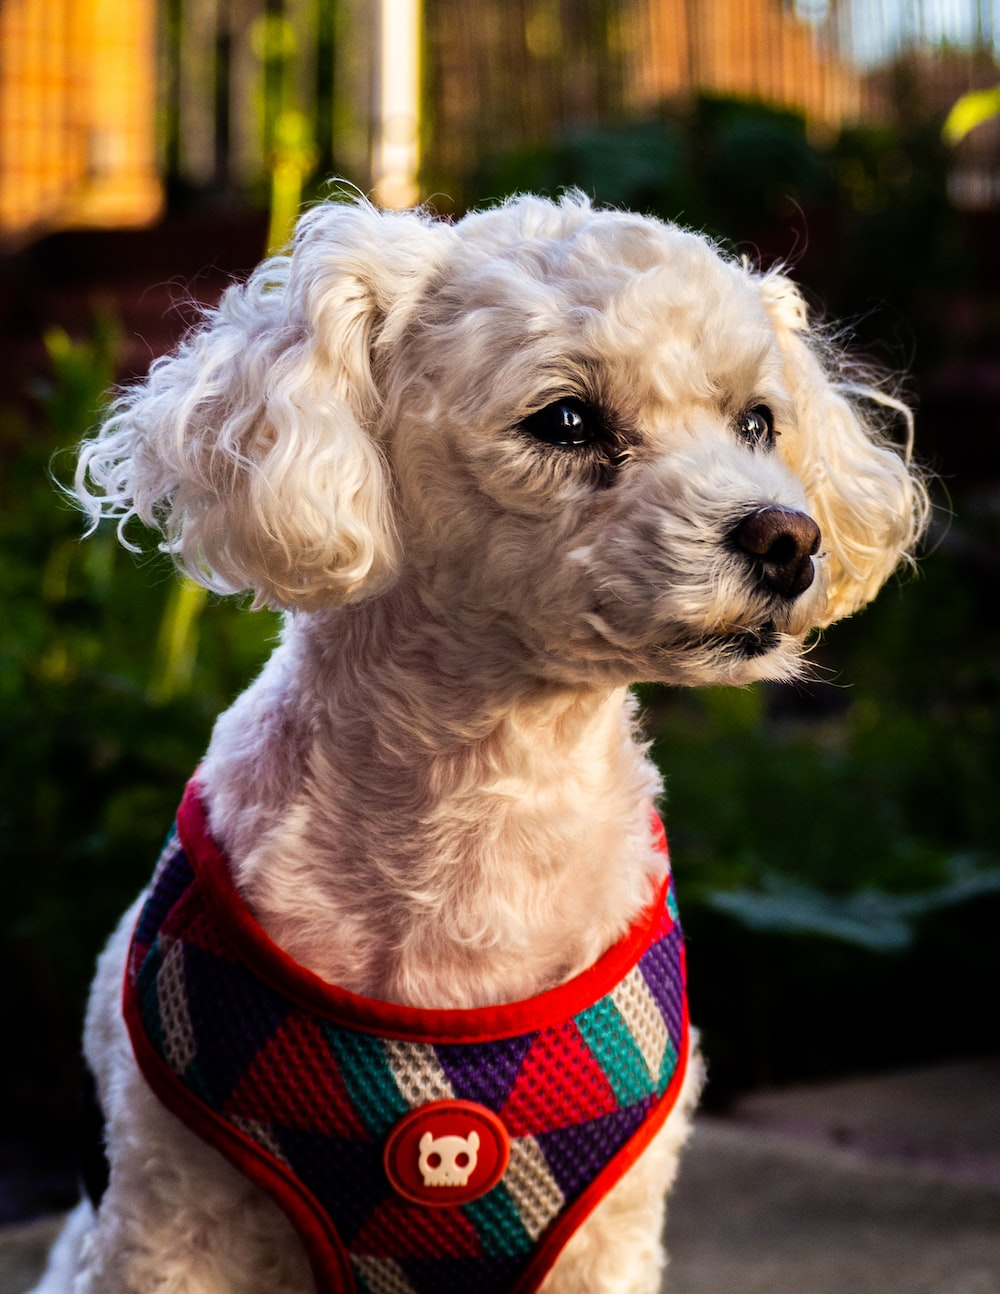 white poodle in red and black striped shirt